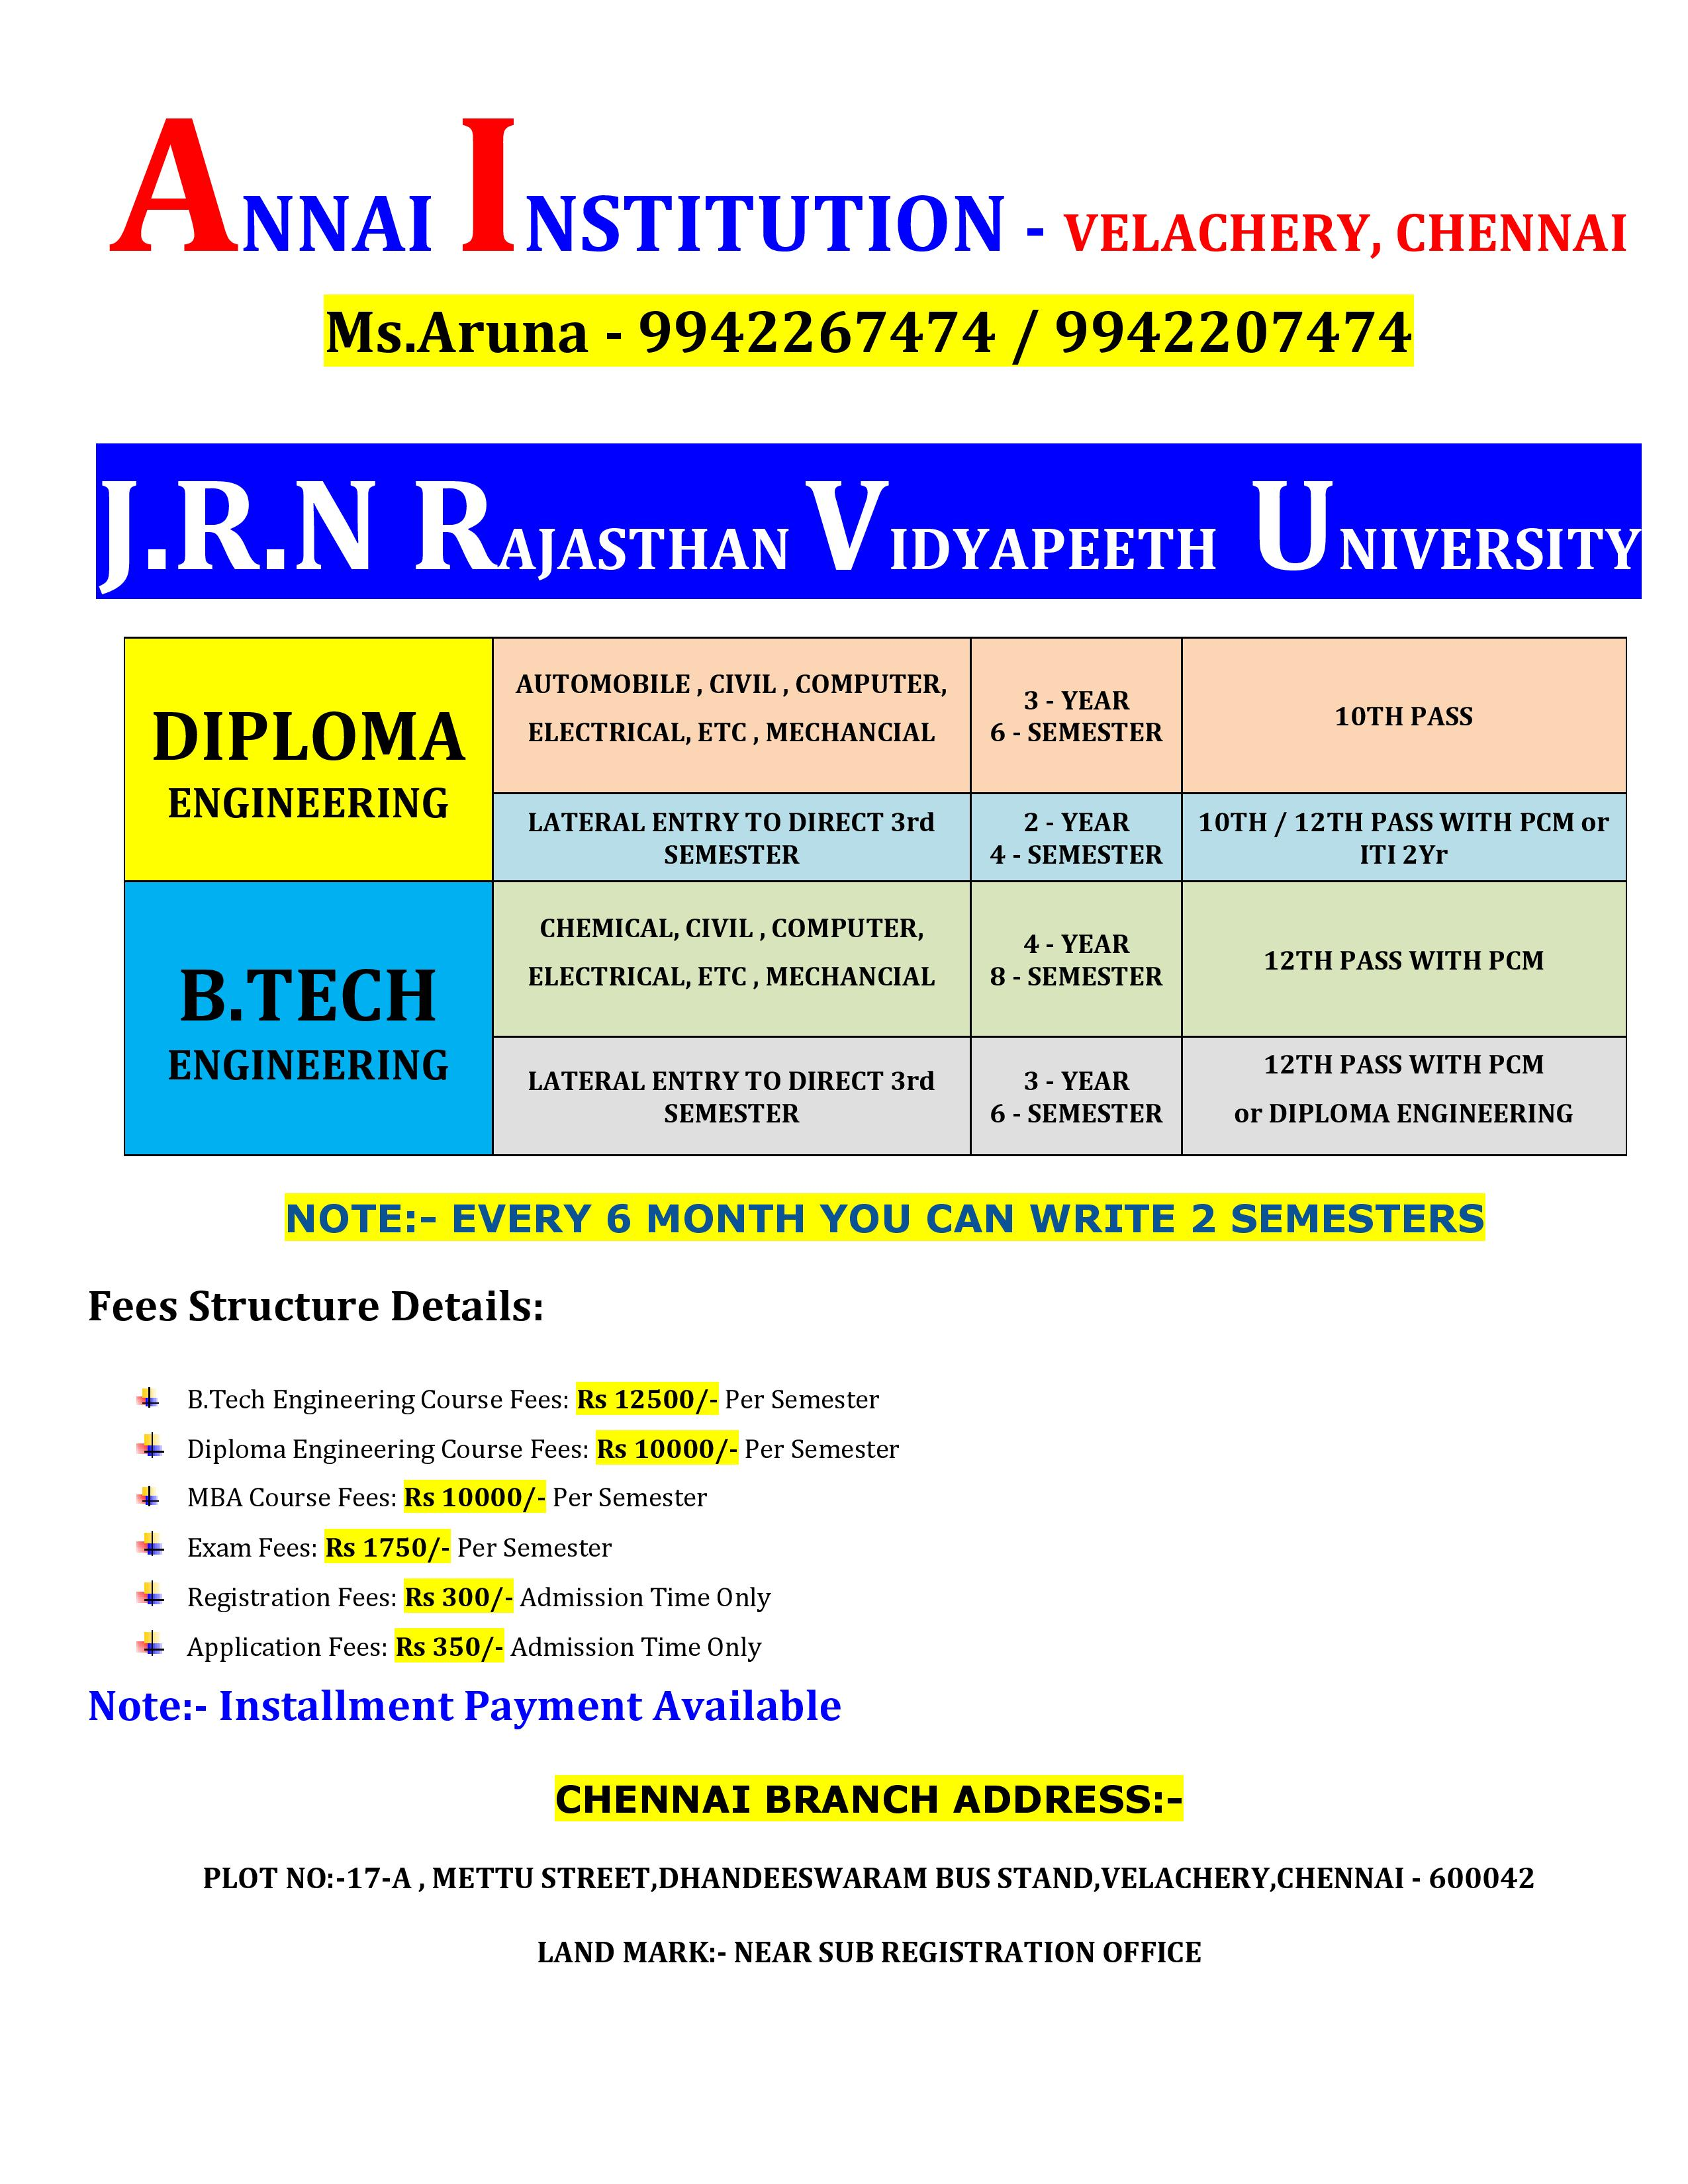 12th Open School Distance Education, Correspondence Courses